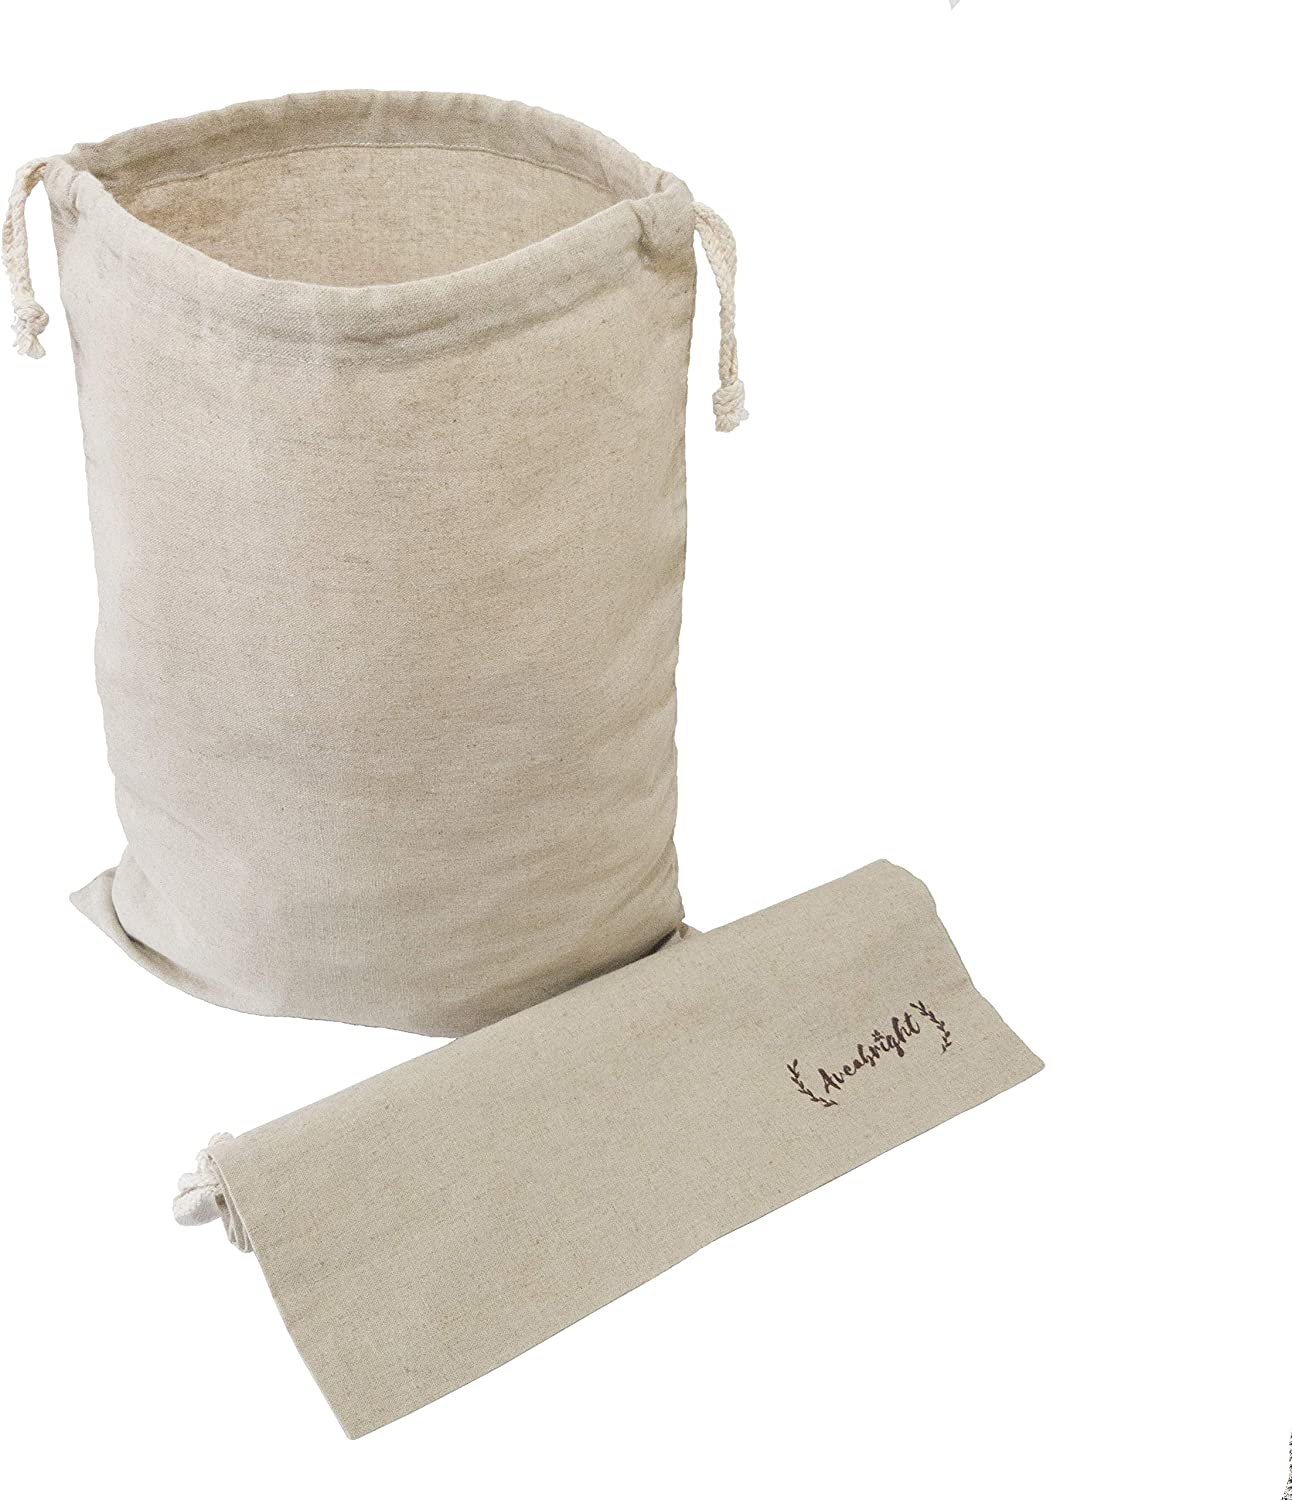 Linen Bread Bags for Homemade Bread Large Drawstring Bags - 100% Pure Flax Linen (No Cotton Blend) Reusable Bread Bags, Linen Laundry Bags, Zero Waste Produce Bags & Other Uses (14x18 Inch, Pack of 2)